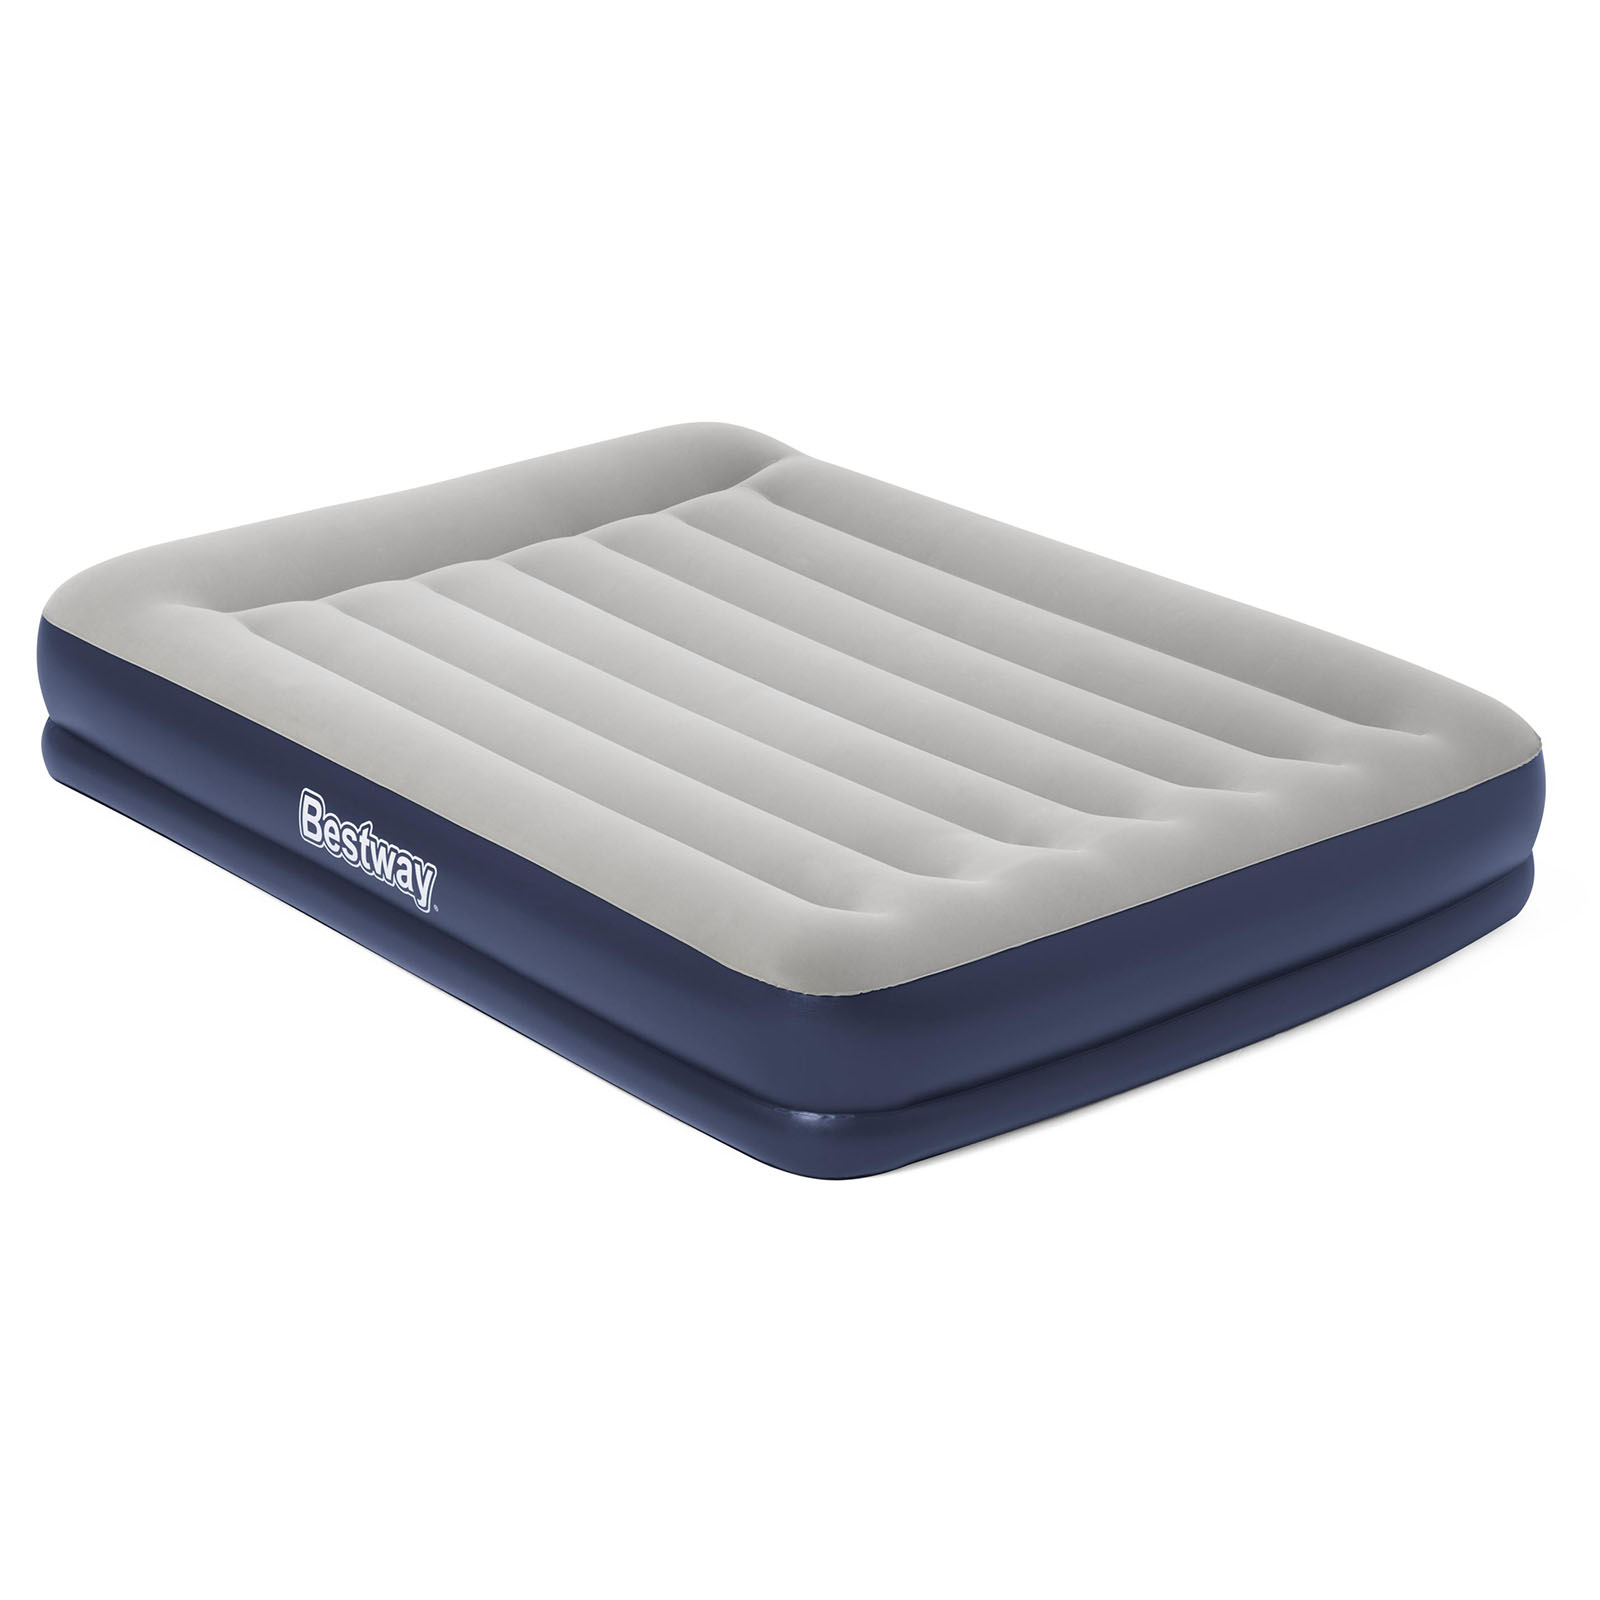 Bestway Air Bed Beds Inflatable Mattress Queen Size Sleeping Mat Built-in Pump